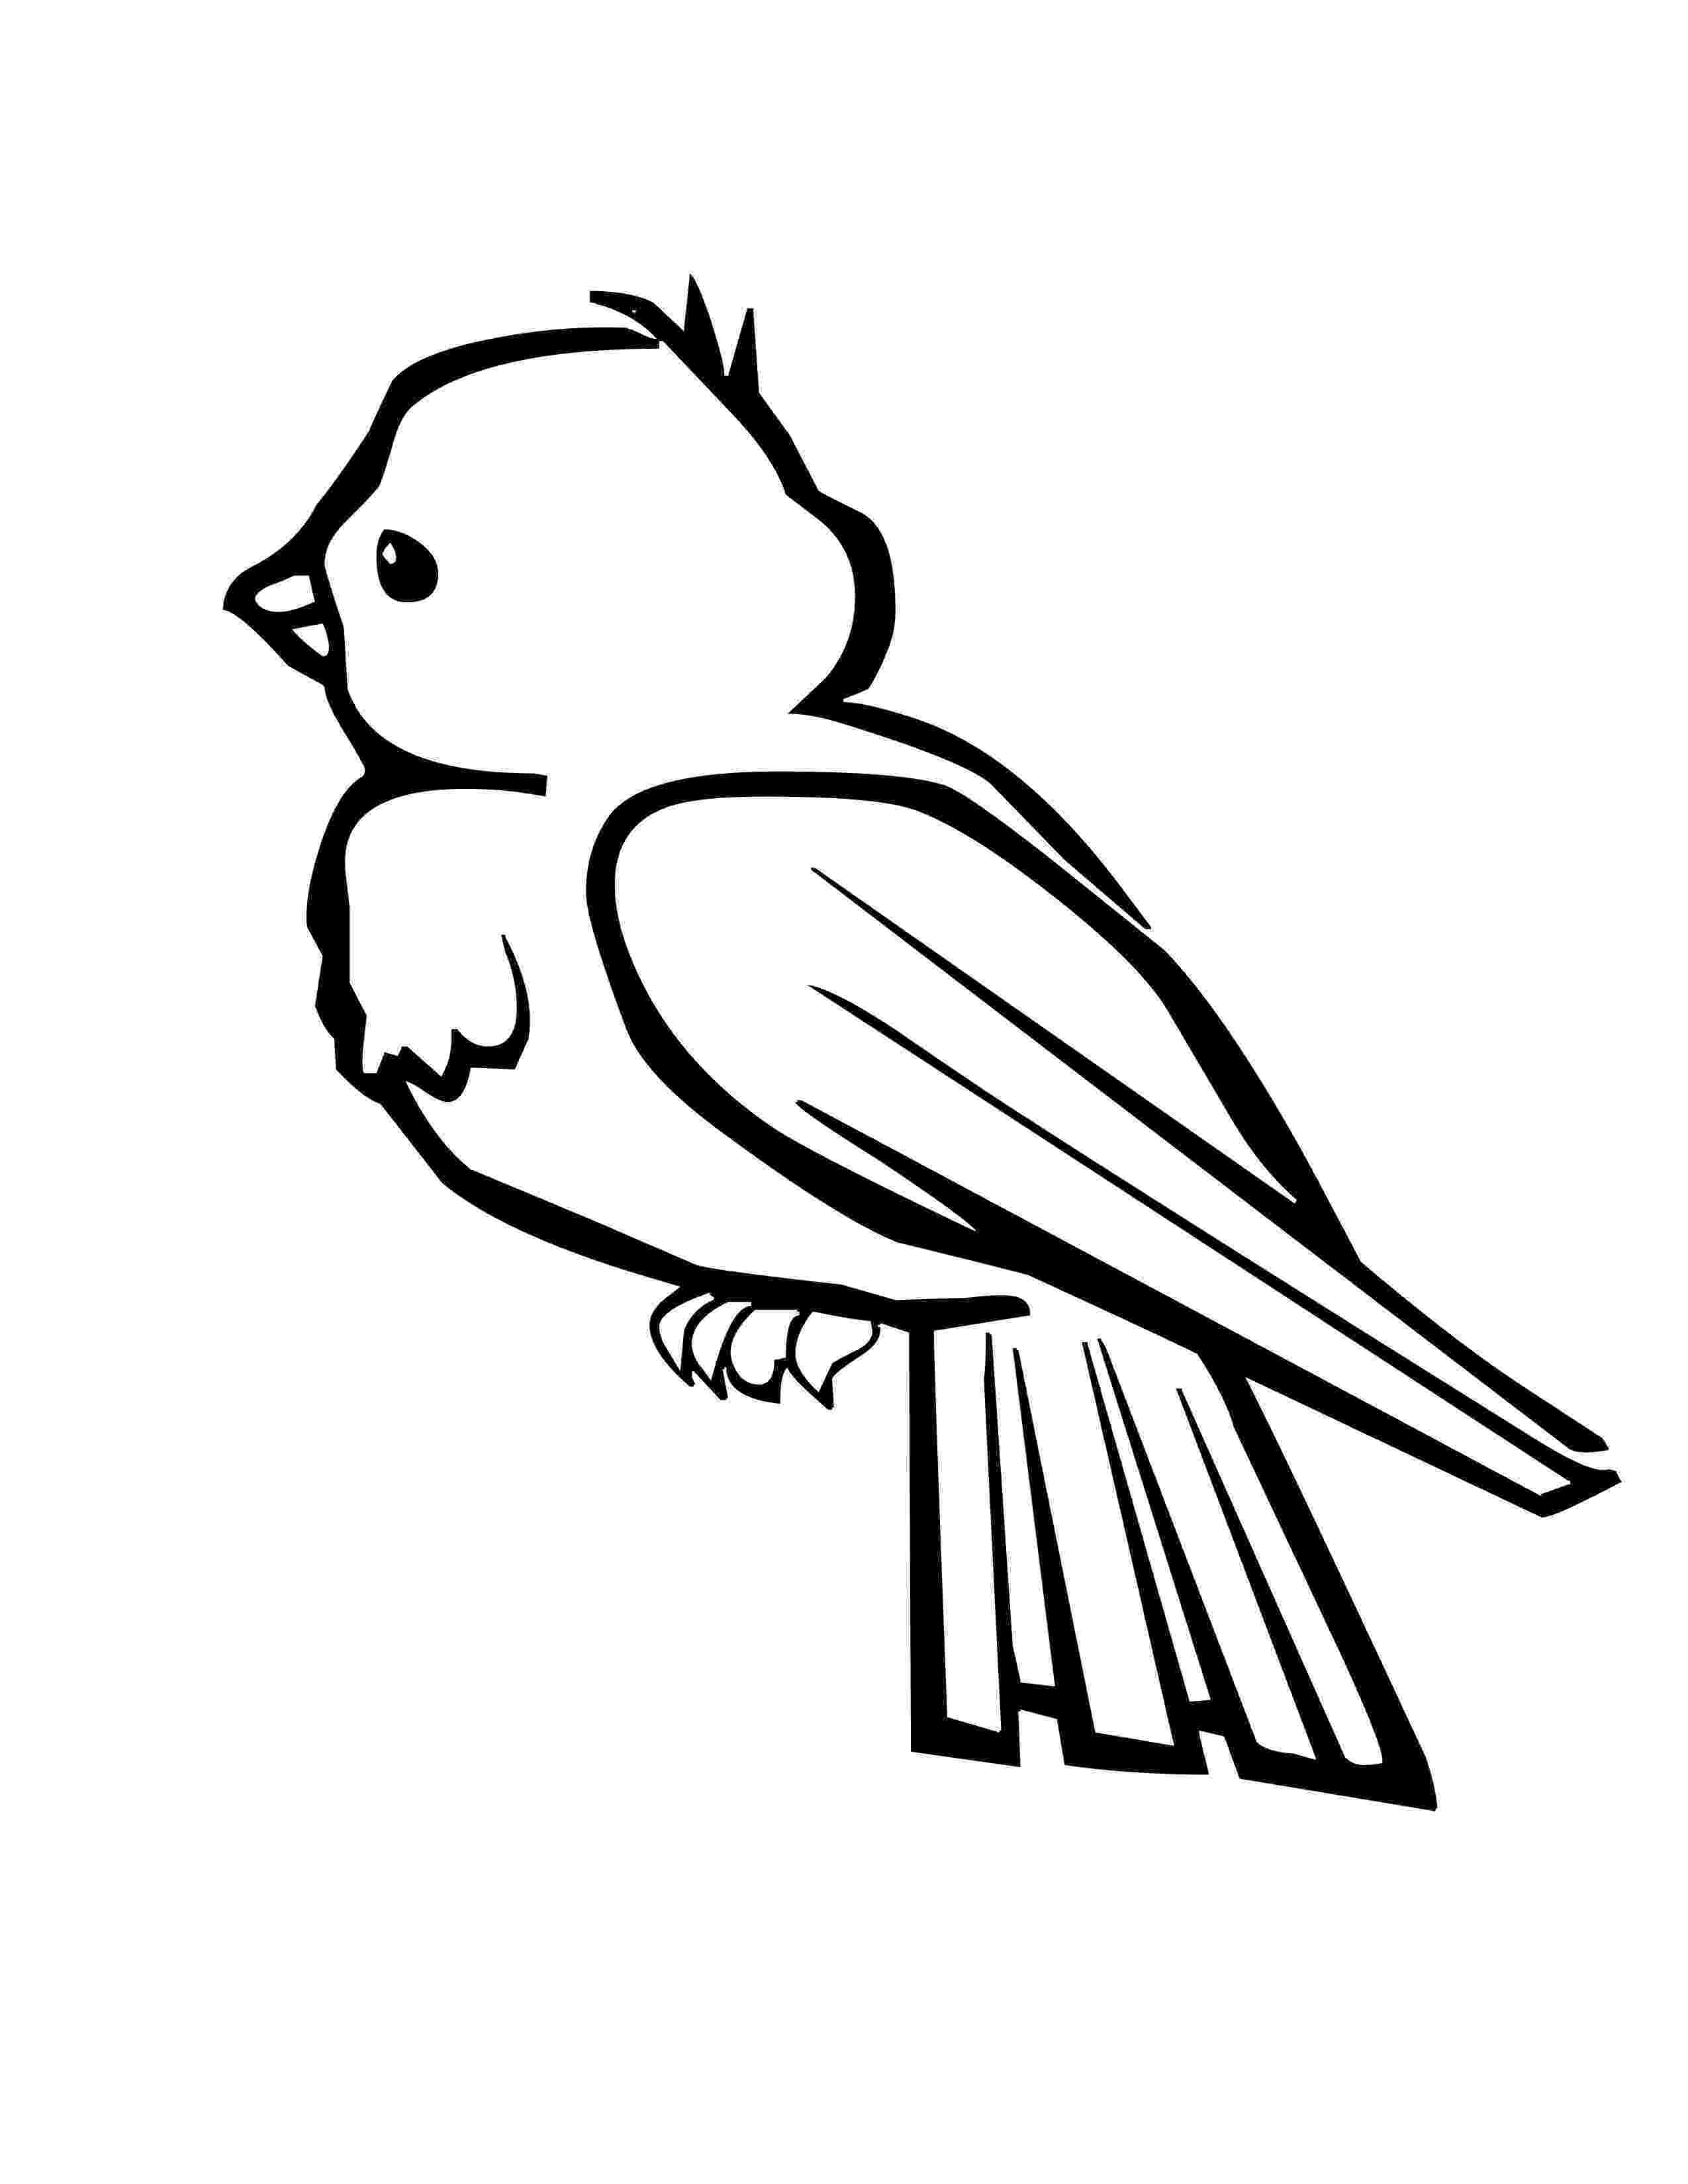 bird colouring pages for kids bird coloring pages bird coloring pages coloring pages colouring bird kids for pages